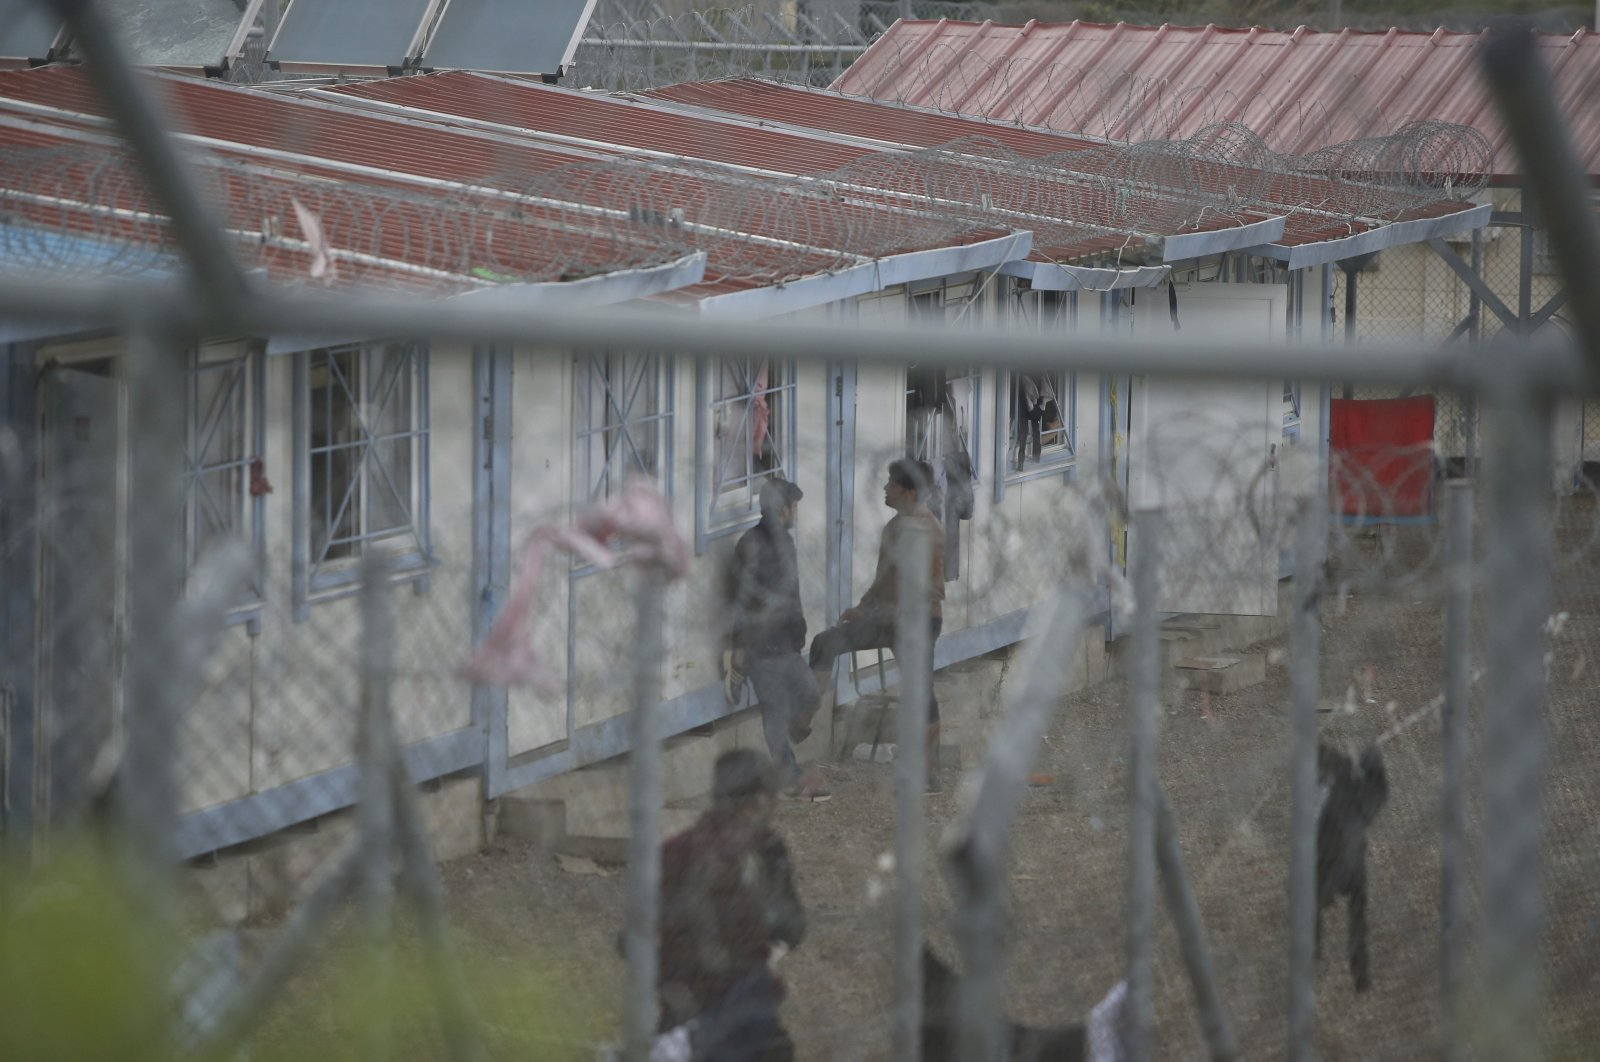 Migrants who were arrested after crossing illegally from Turkey to Greece stand behind a fence at a detention center near the village of Fylakio, at the Greek-Turkish border, Greece, May 21, 2021. (AP File Photo)